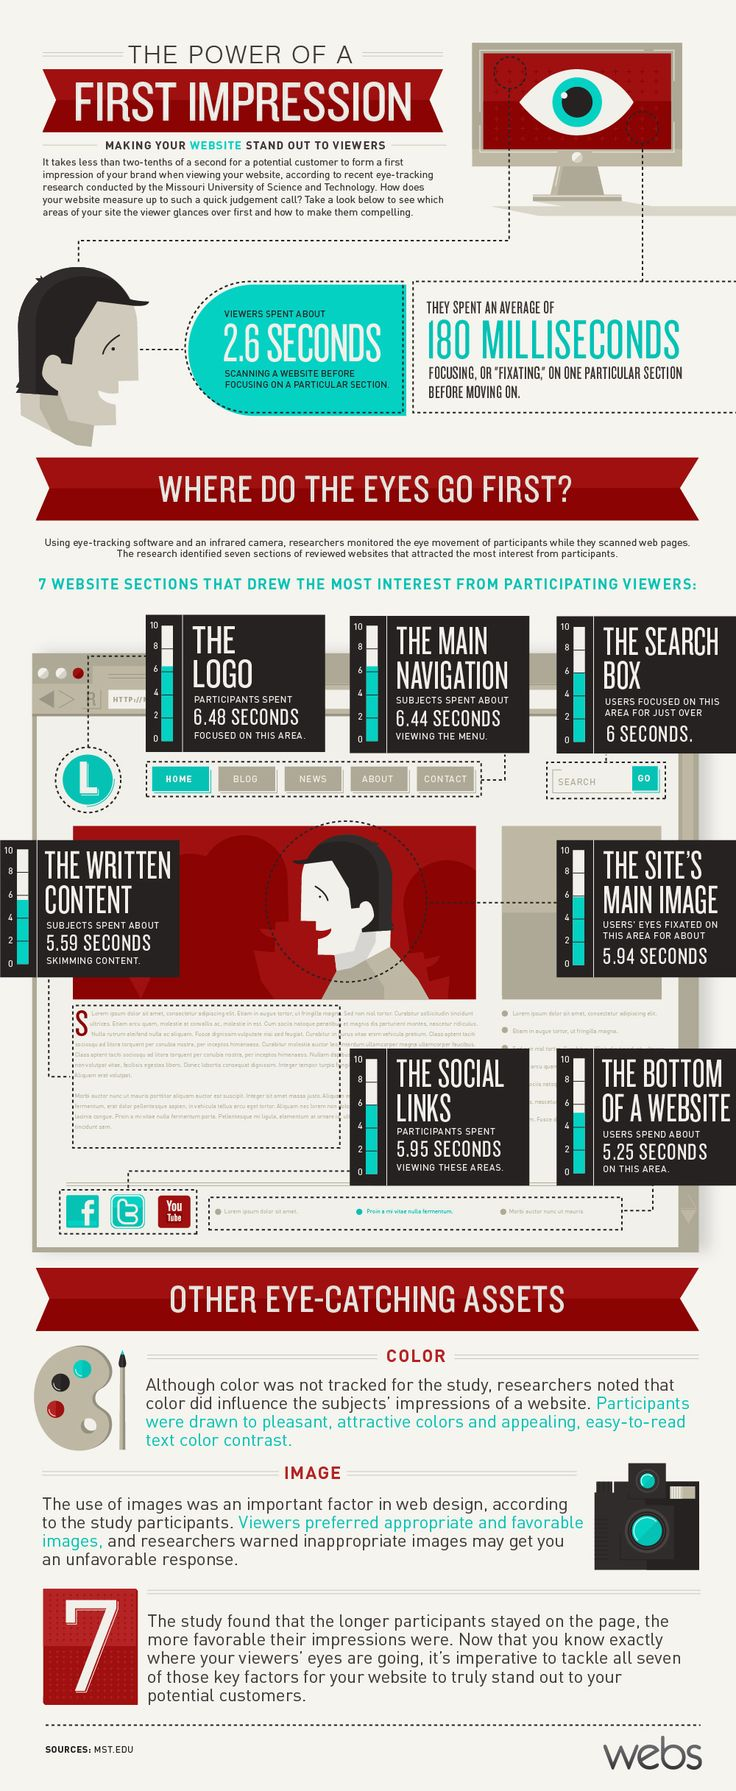 Website Tips Based On Your Websites First Impression [Infographic]